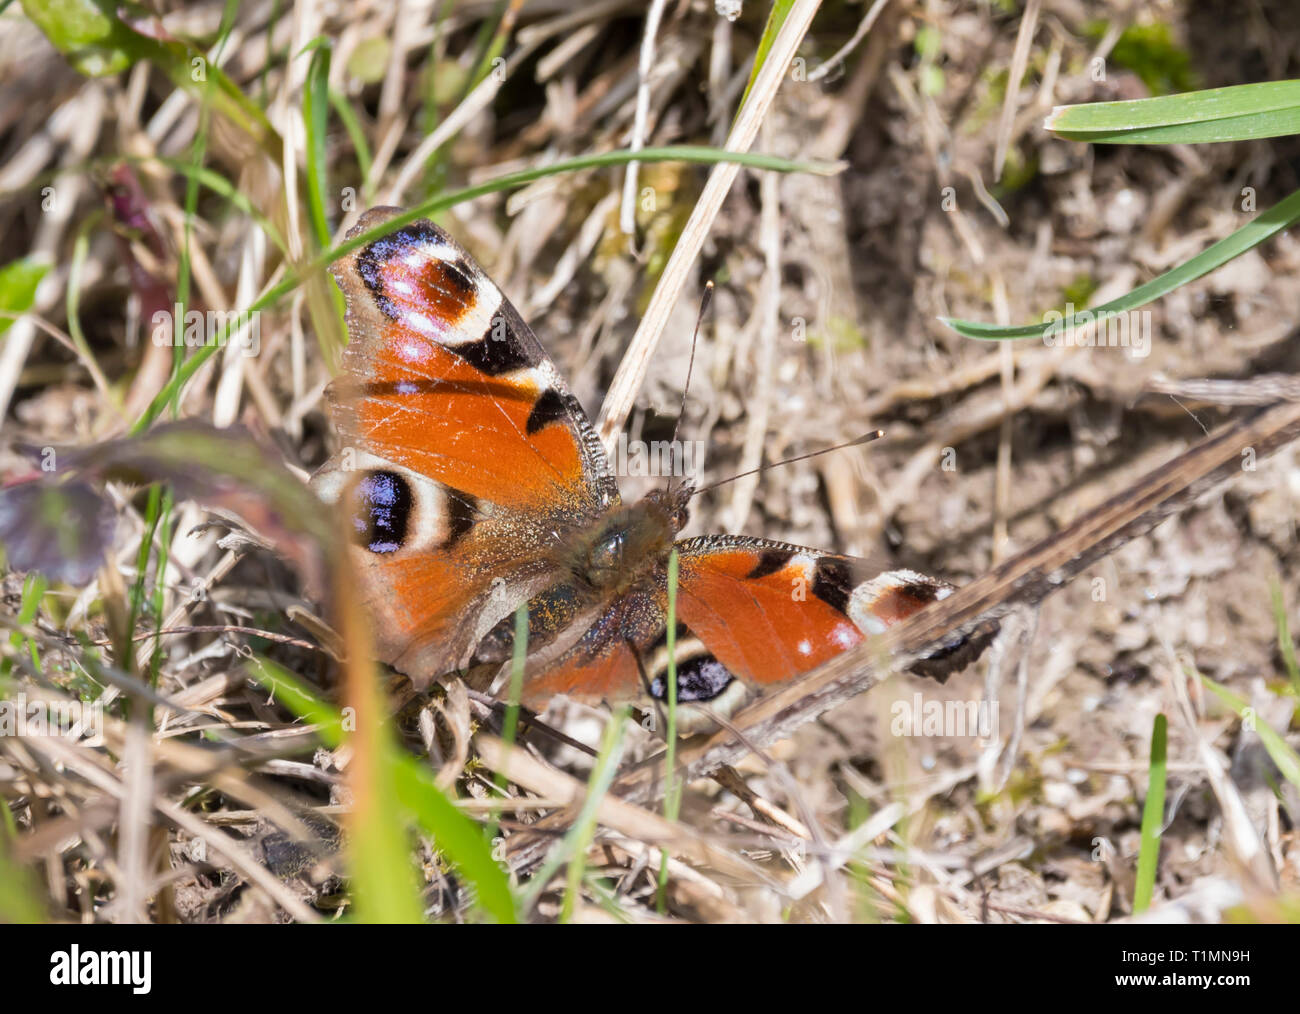 European Peacock Butterfly (Aglais io) on the ground in Spring in West Sussex, UK. - Stock Image